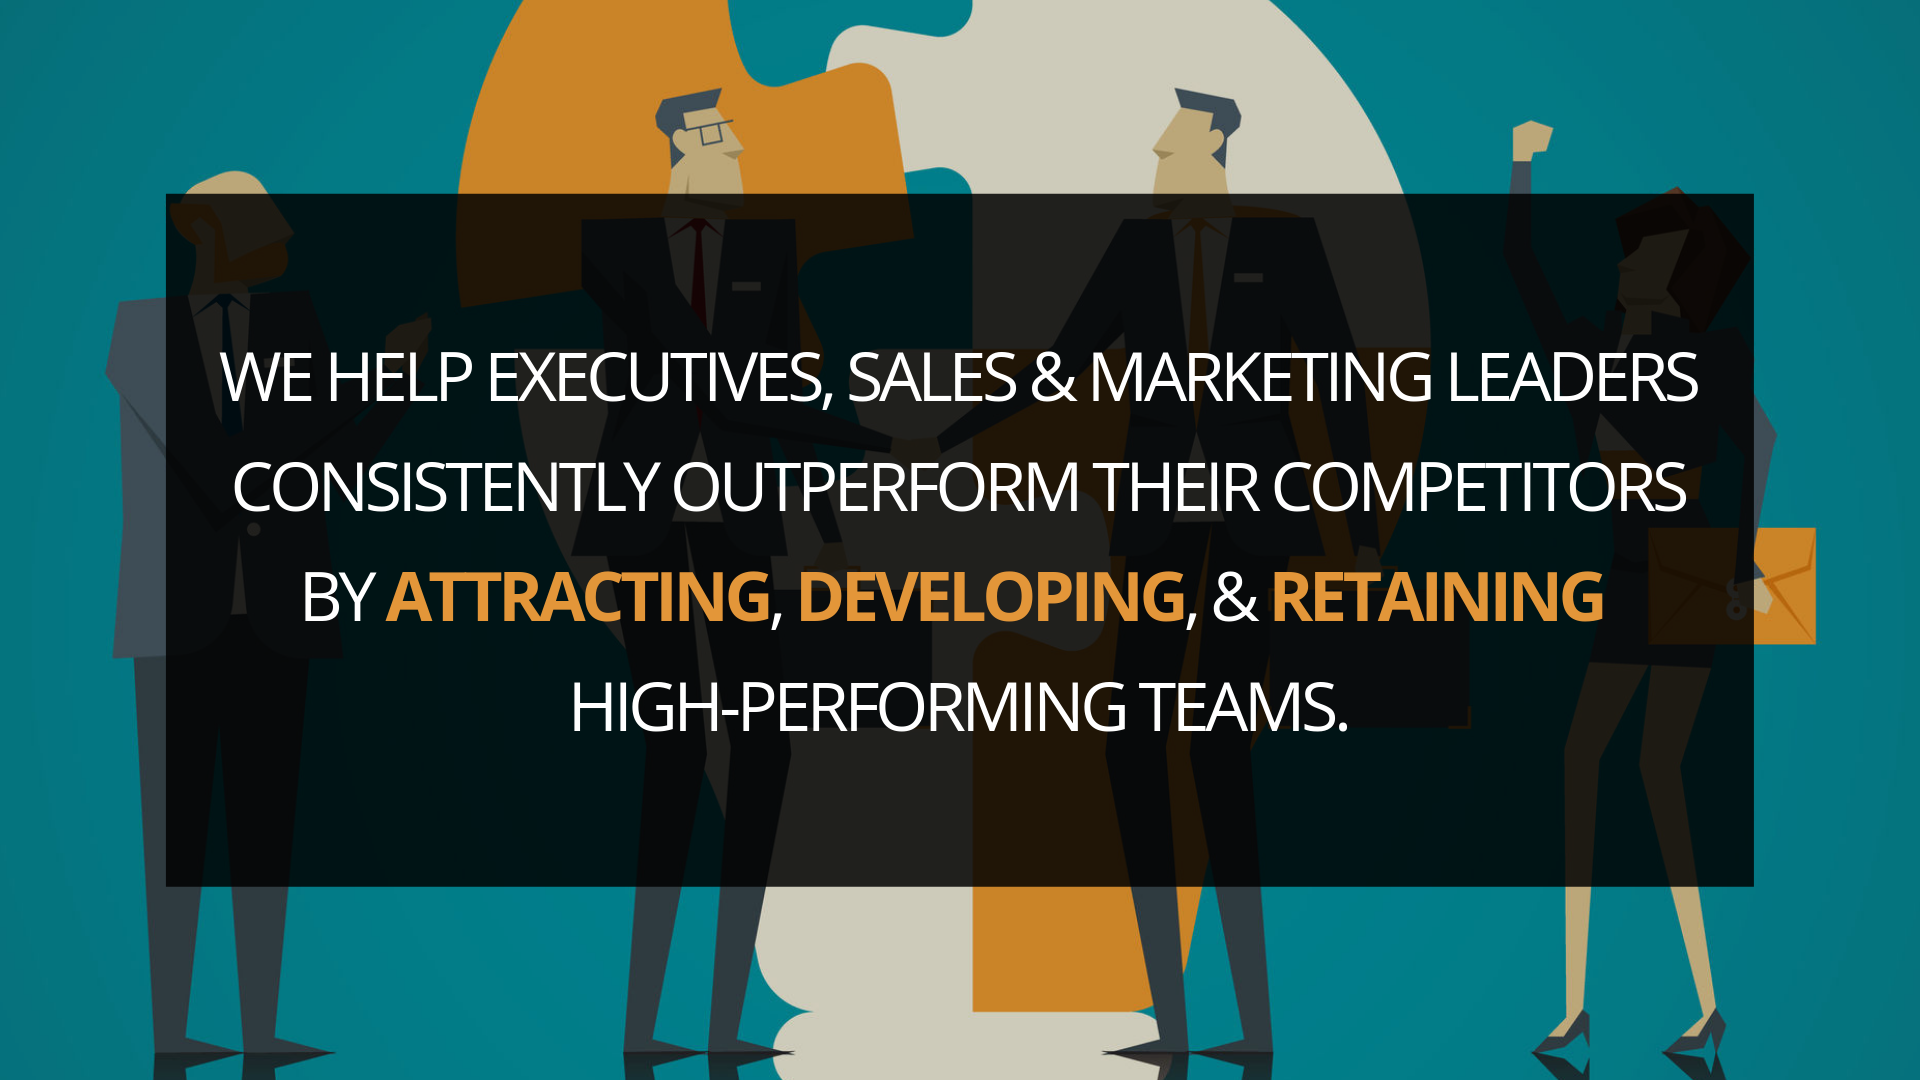 We help executives, sales & marketing leaders consistently outperform their competitors by   attracting  ,   developing  , &   retaining   high-performing teams.